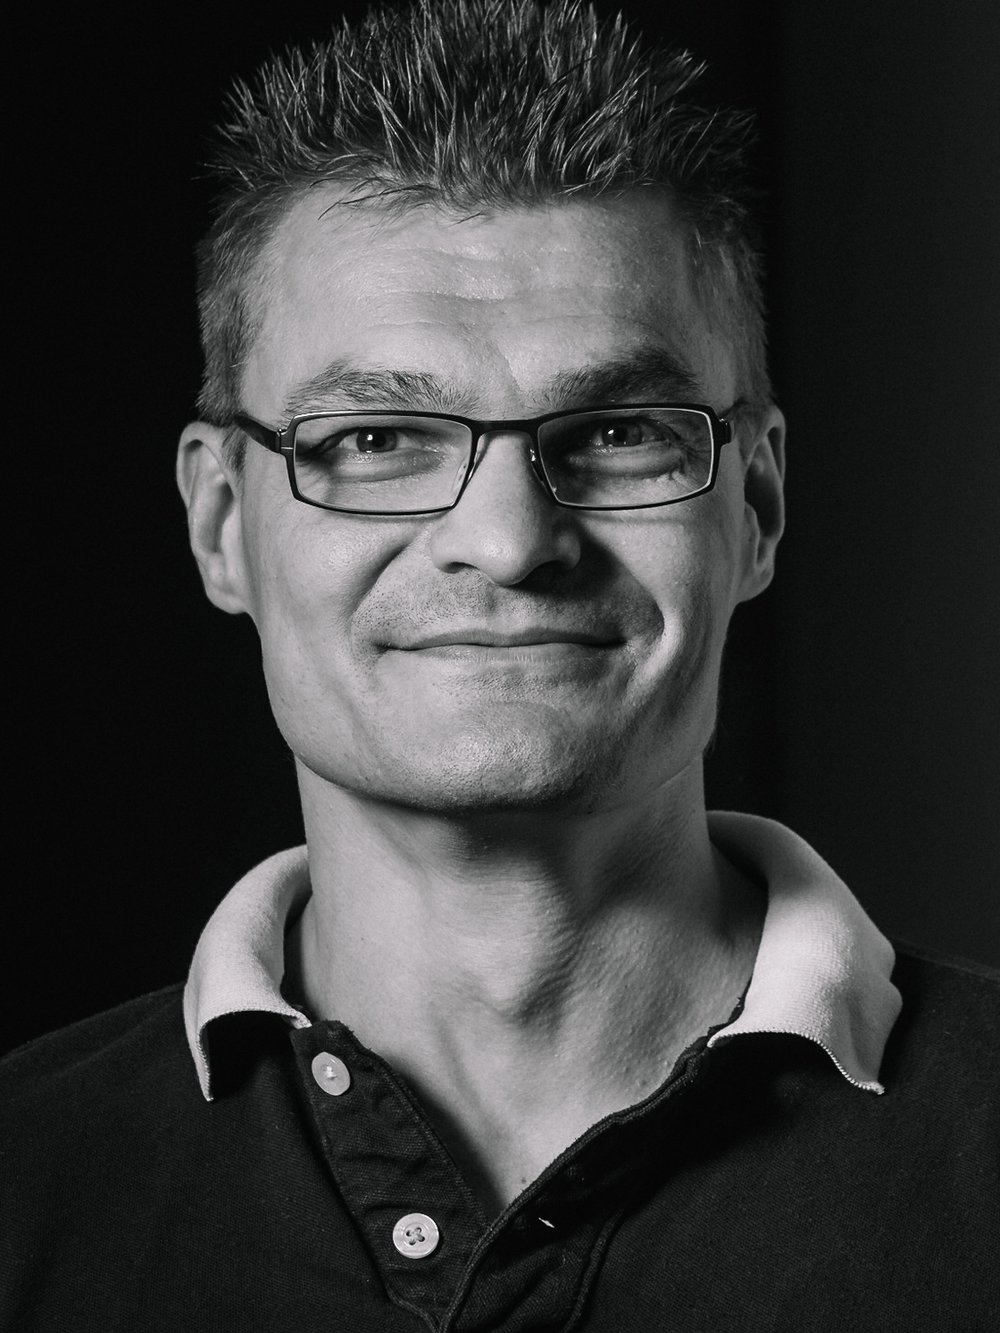 Klaus Melakari Founder/Tech. Development director. 20 years experience in R&D, system design and technology. Head of Computational Vision Systems at Microsoft Mobile. Distinguished architect at Nokia. M.Sc, Electrical and Electronics Engineering.